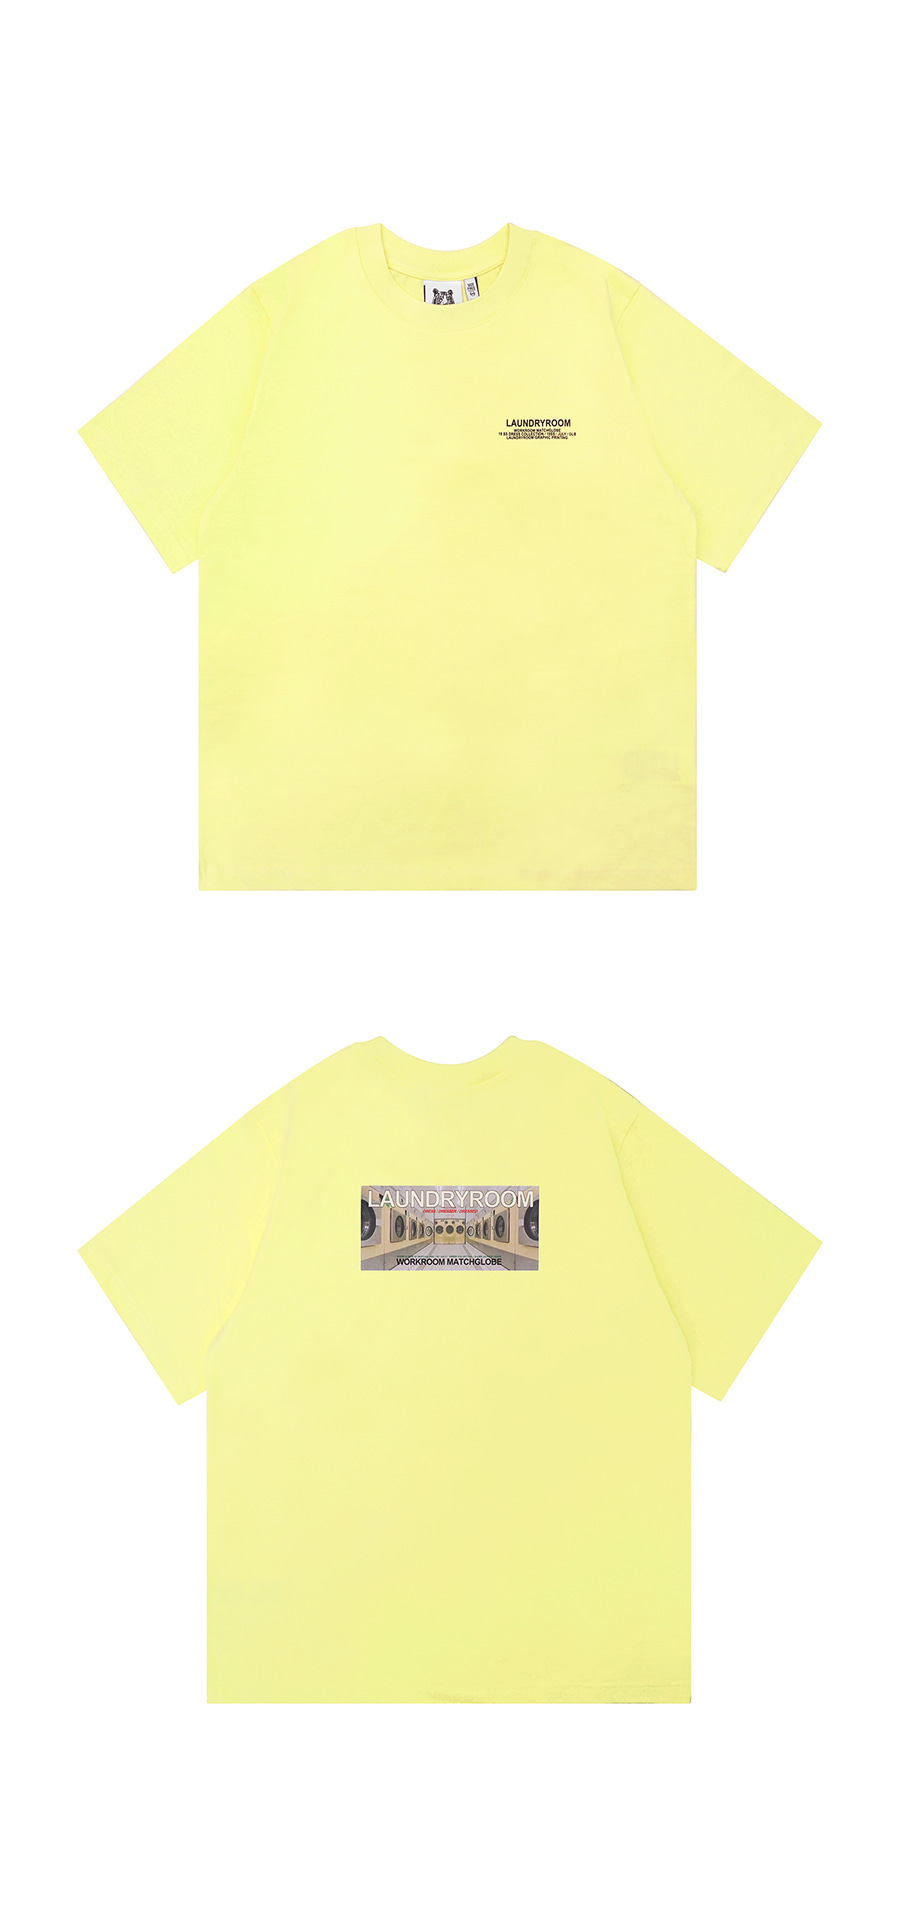 매치글로브(MATCHGLOBE) MG9S LAUNDRY TEE (LIGHT YELLOW)